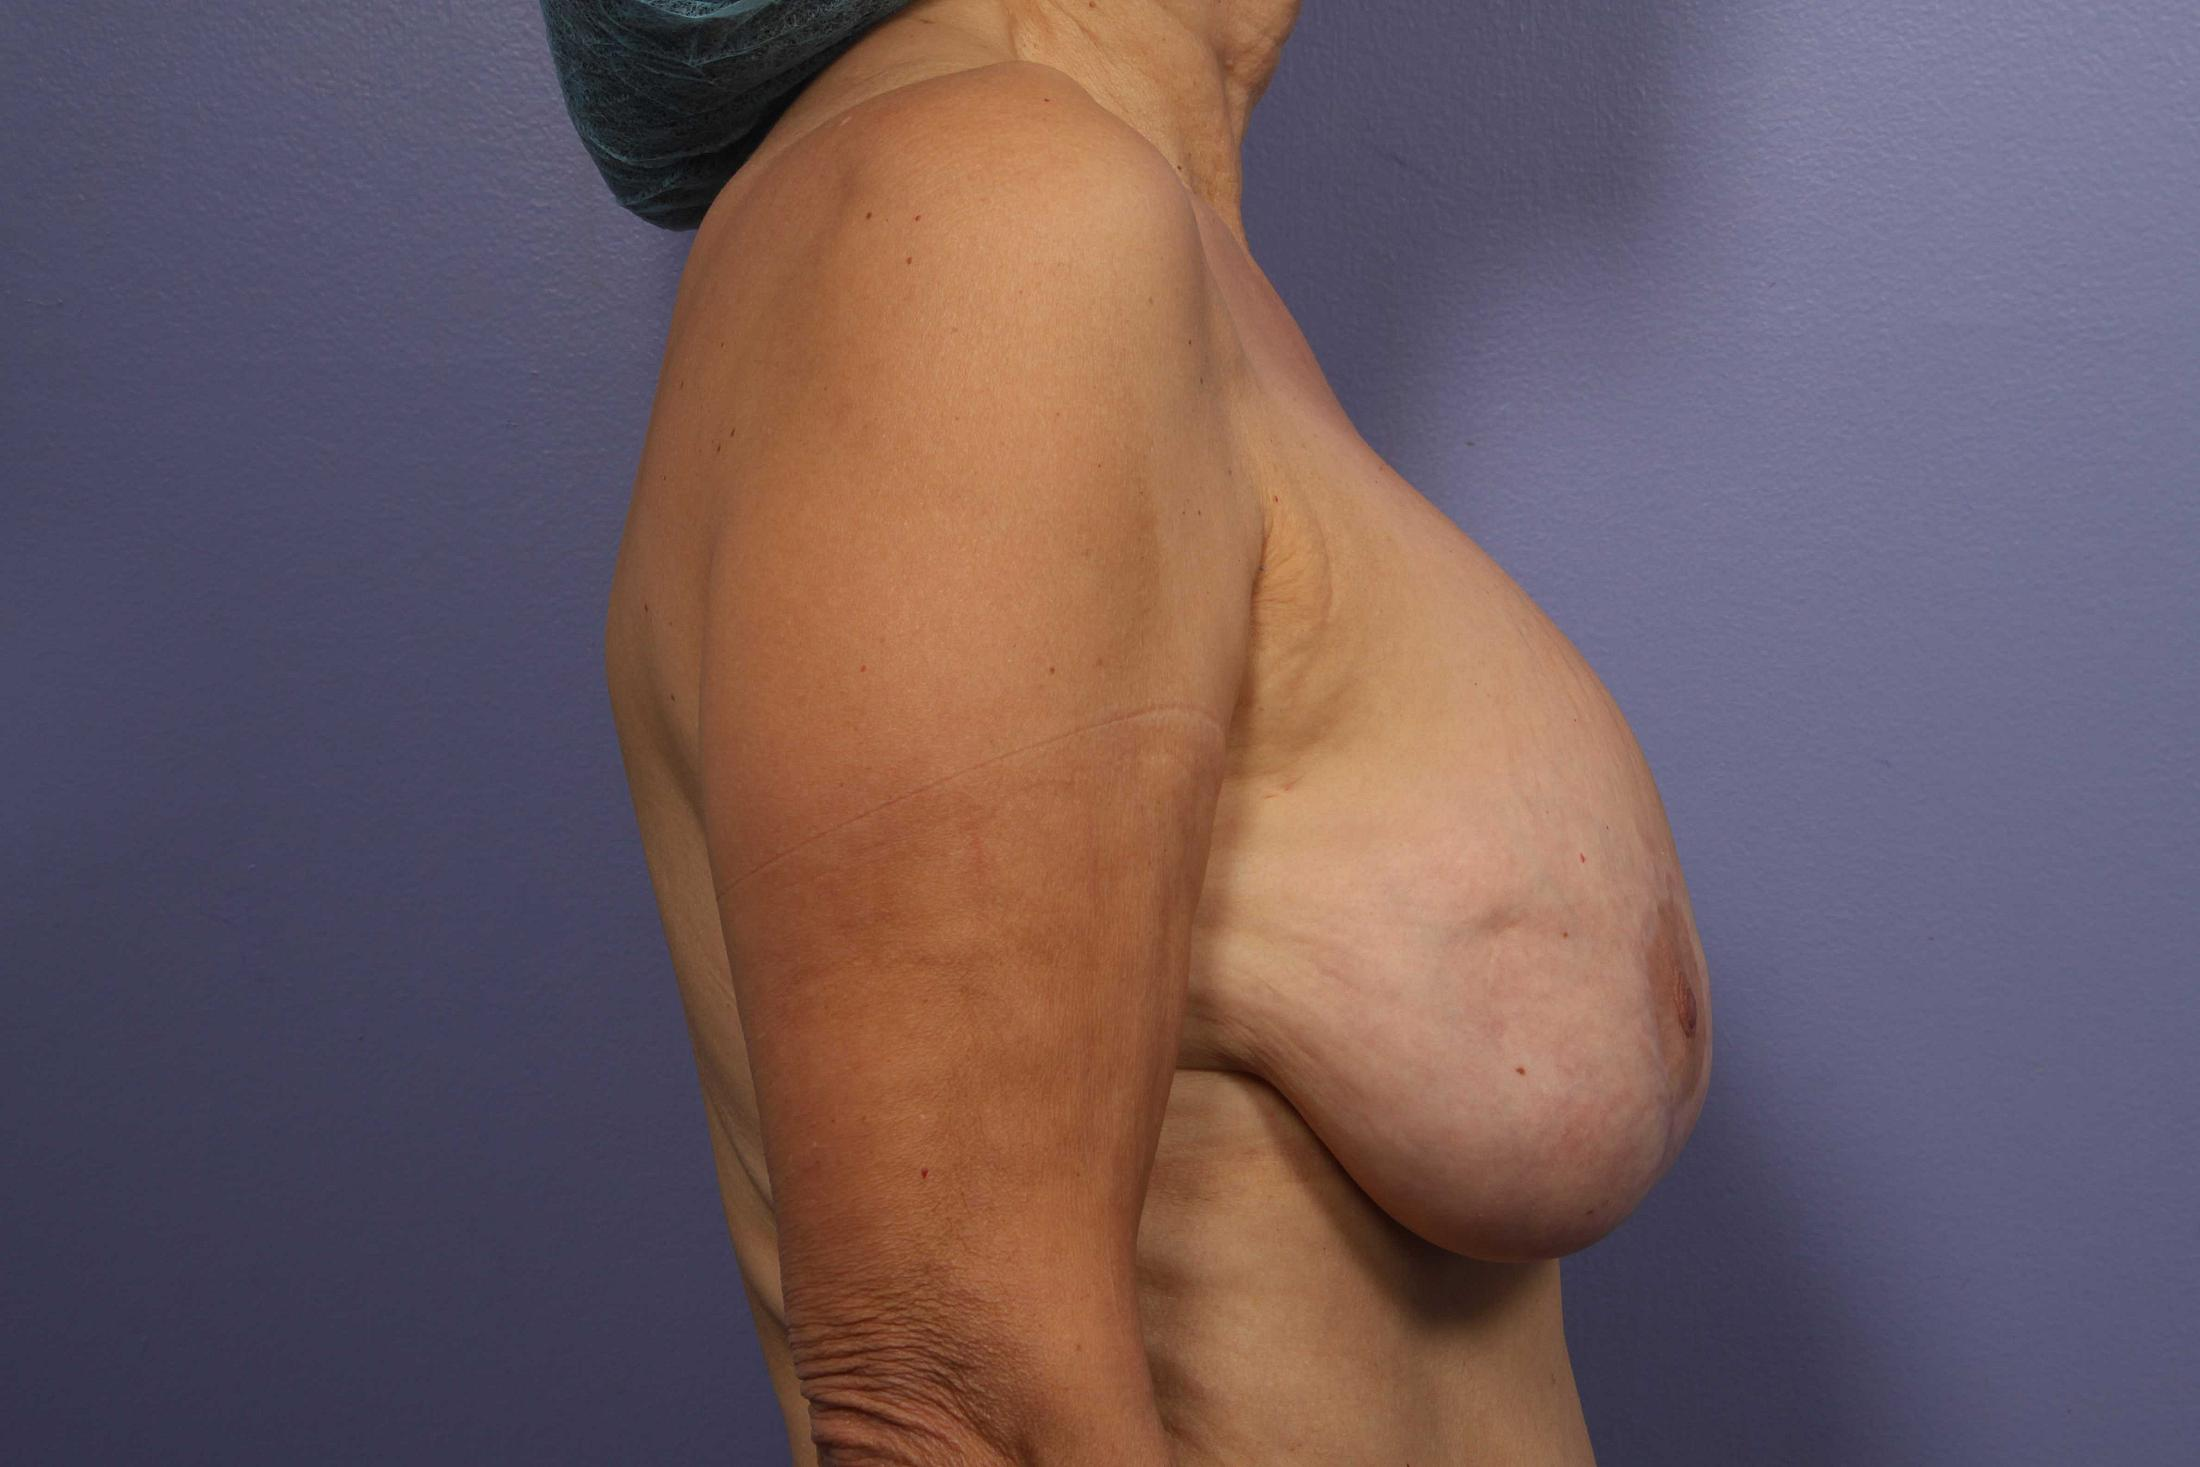 Implant Removal With Fat Grafting Before & After Image